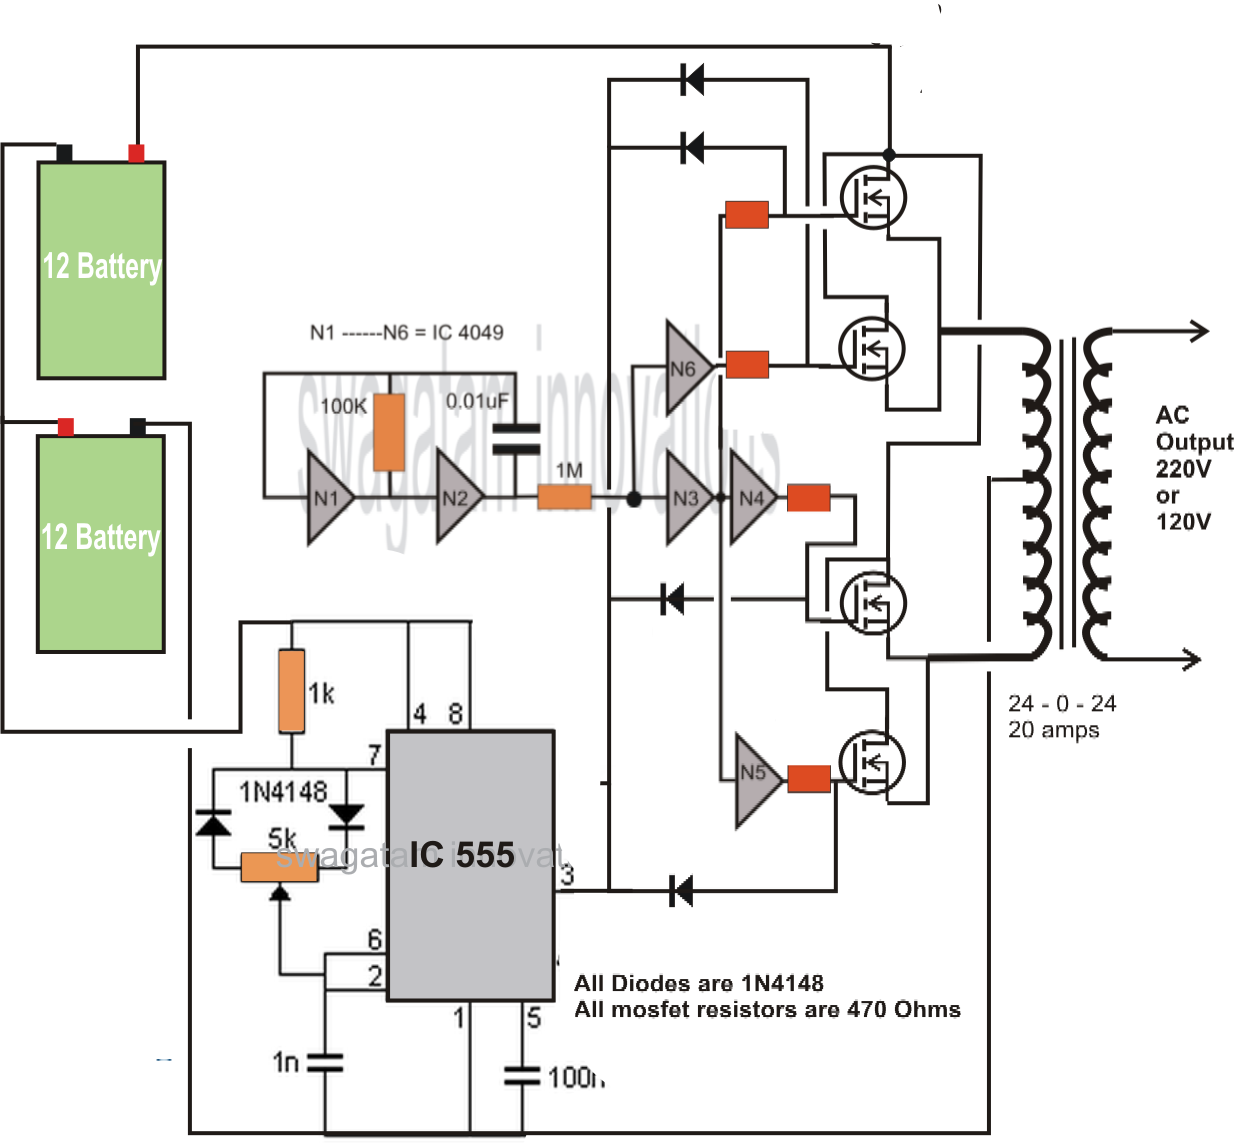 capacitor wiring diagram with Vasistaprojects Blogspot on System Wiring Diagram For Door also Blinking Led Circuit together with Water Level Indicator Circuit Diagram besides 361 additionally Purpose Of The Diode And Capacitor In This Motor Circuit.